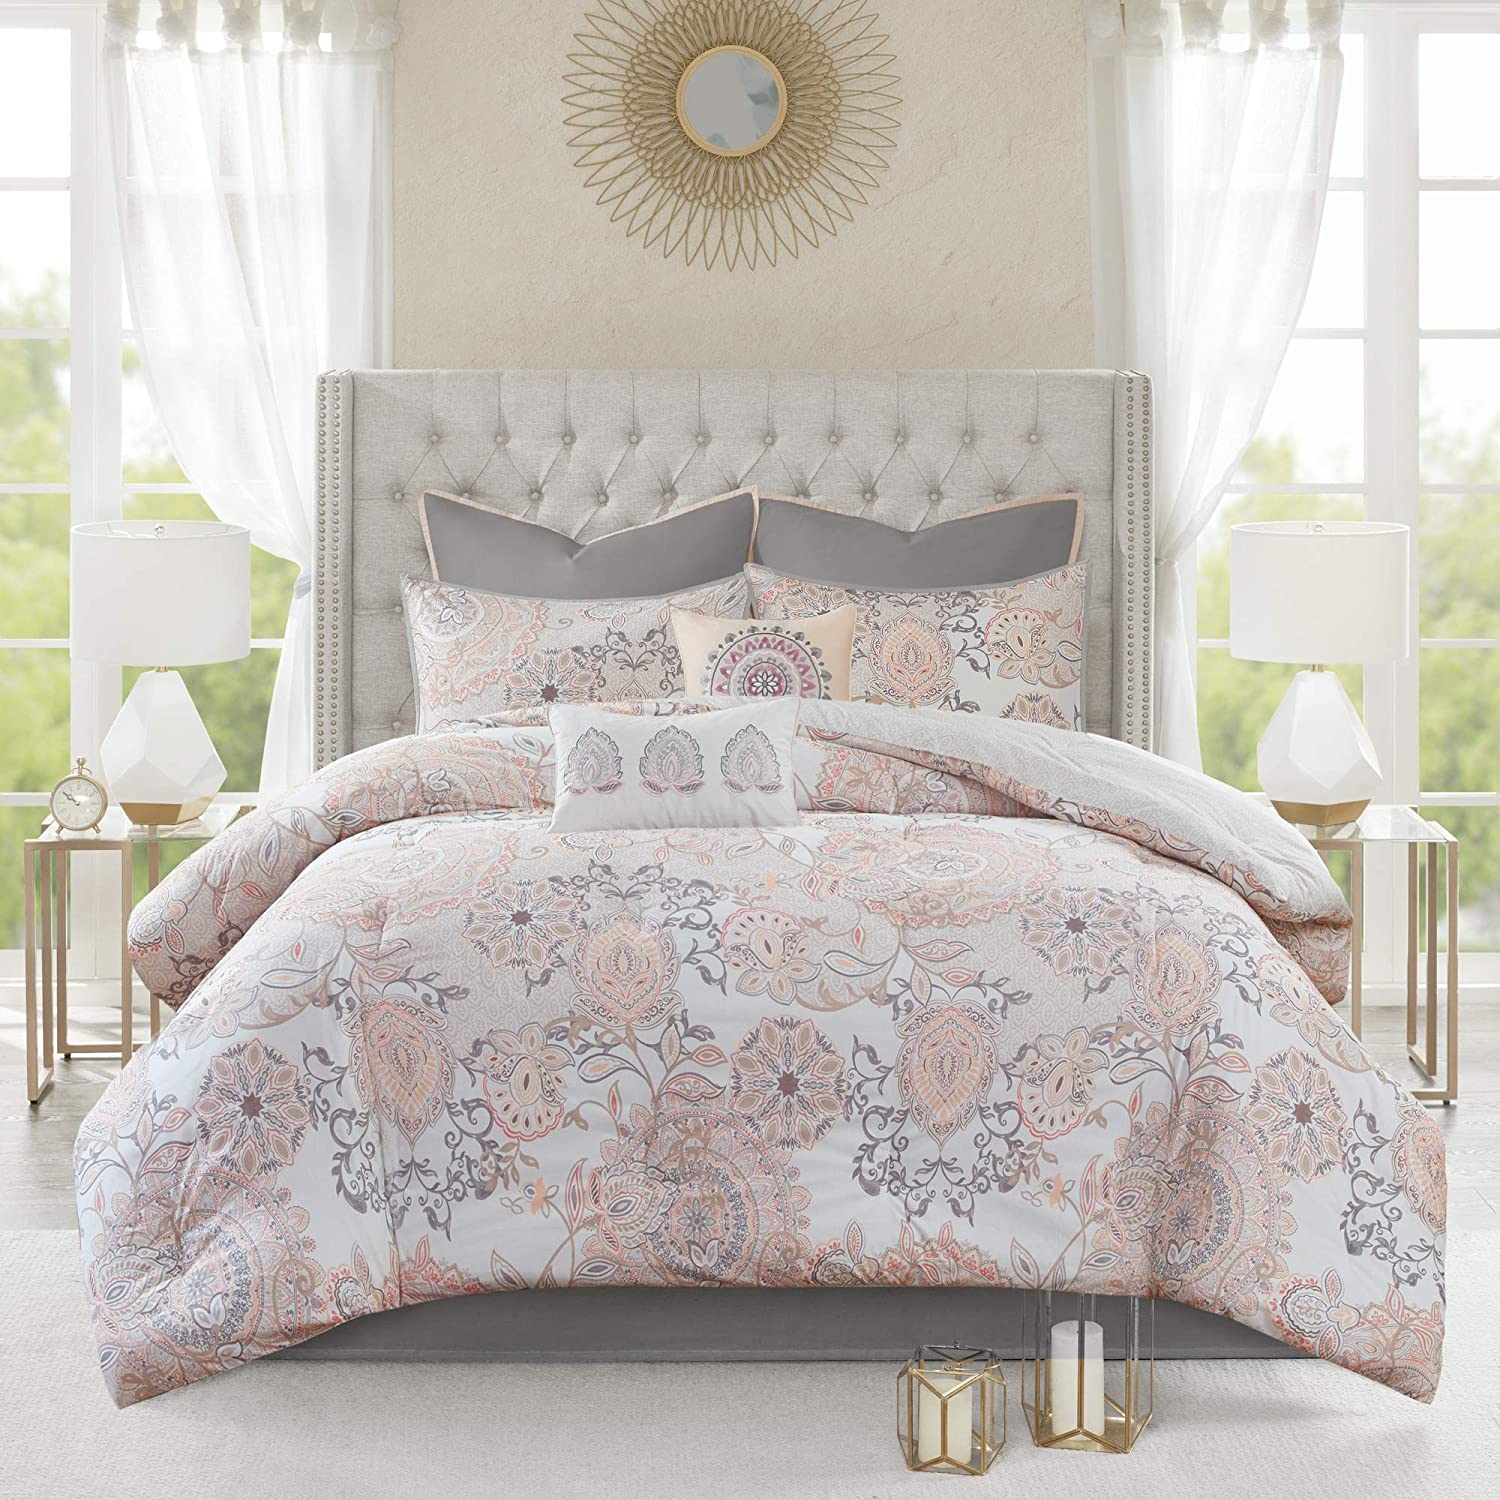 "Madison Park Reversible 100% Cotton Comforter Season Set, Matching Bed Skirt, Decorative Pillows, Queen(90""x90""), Isla, Floral Medallion Blush"